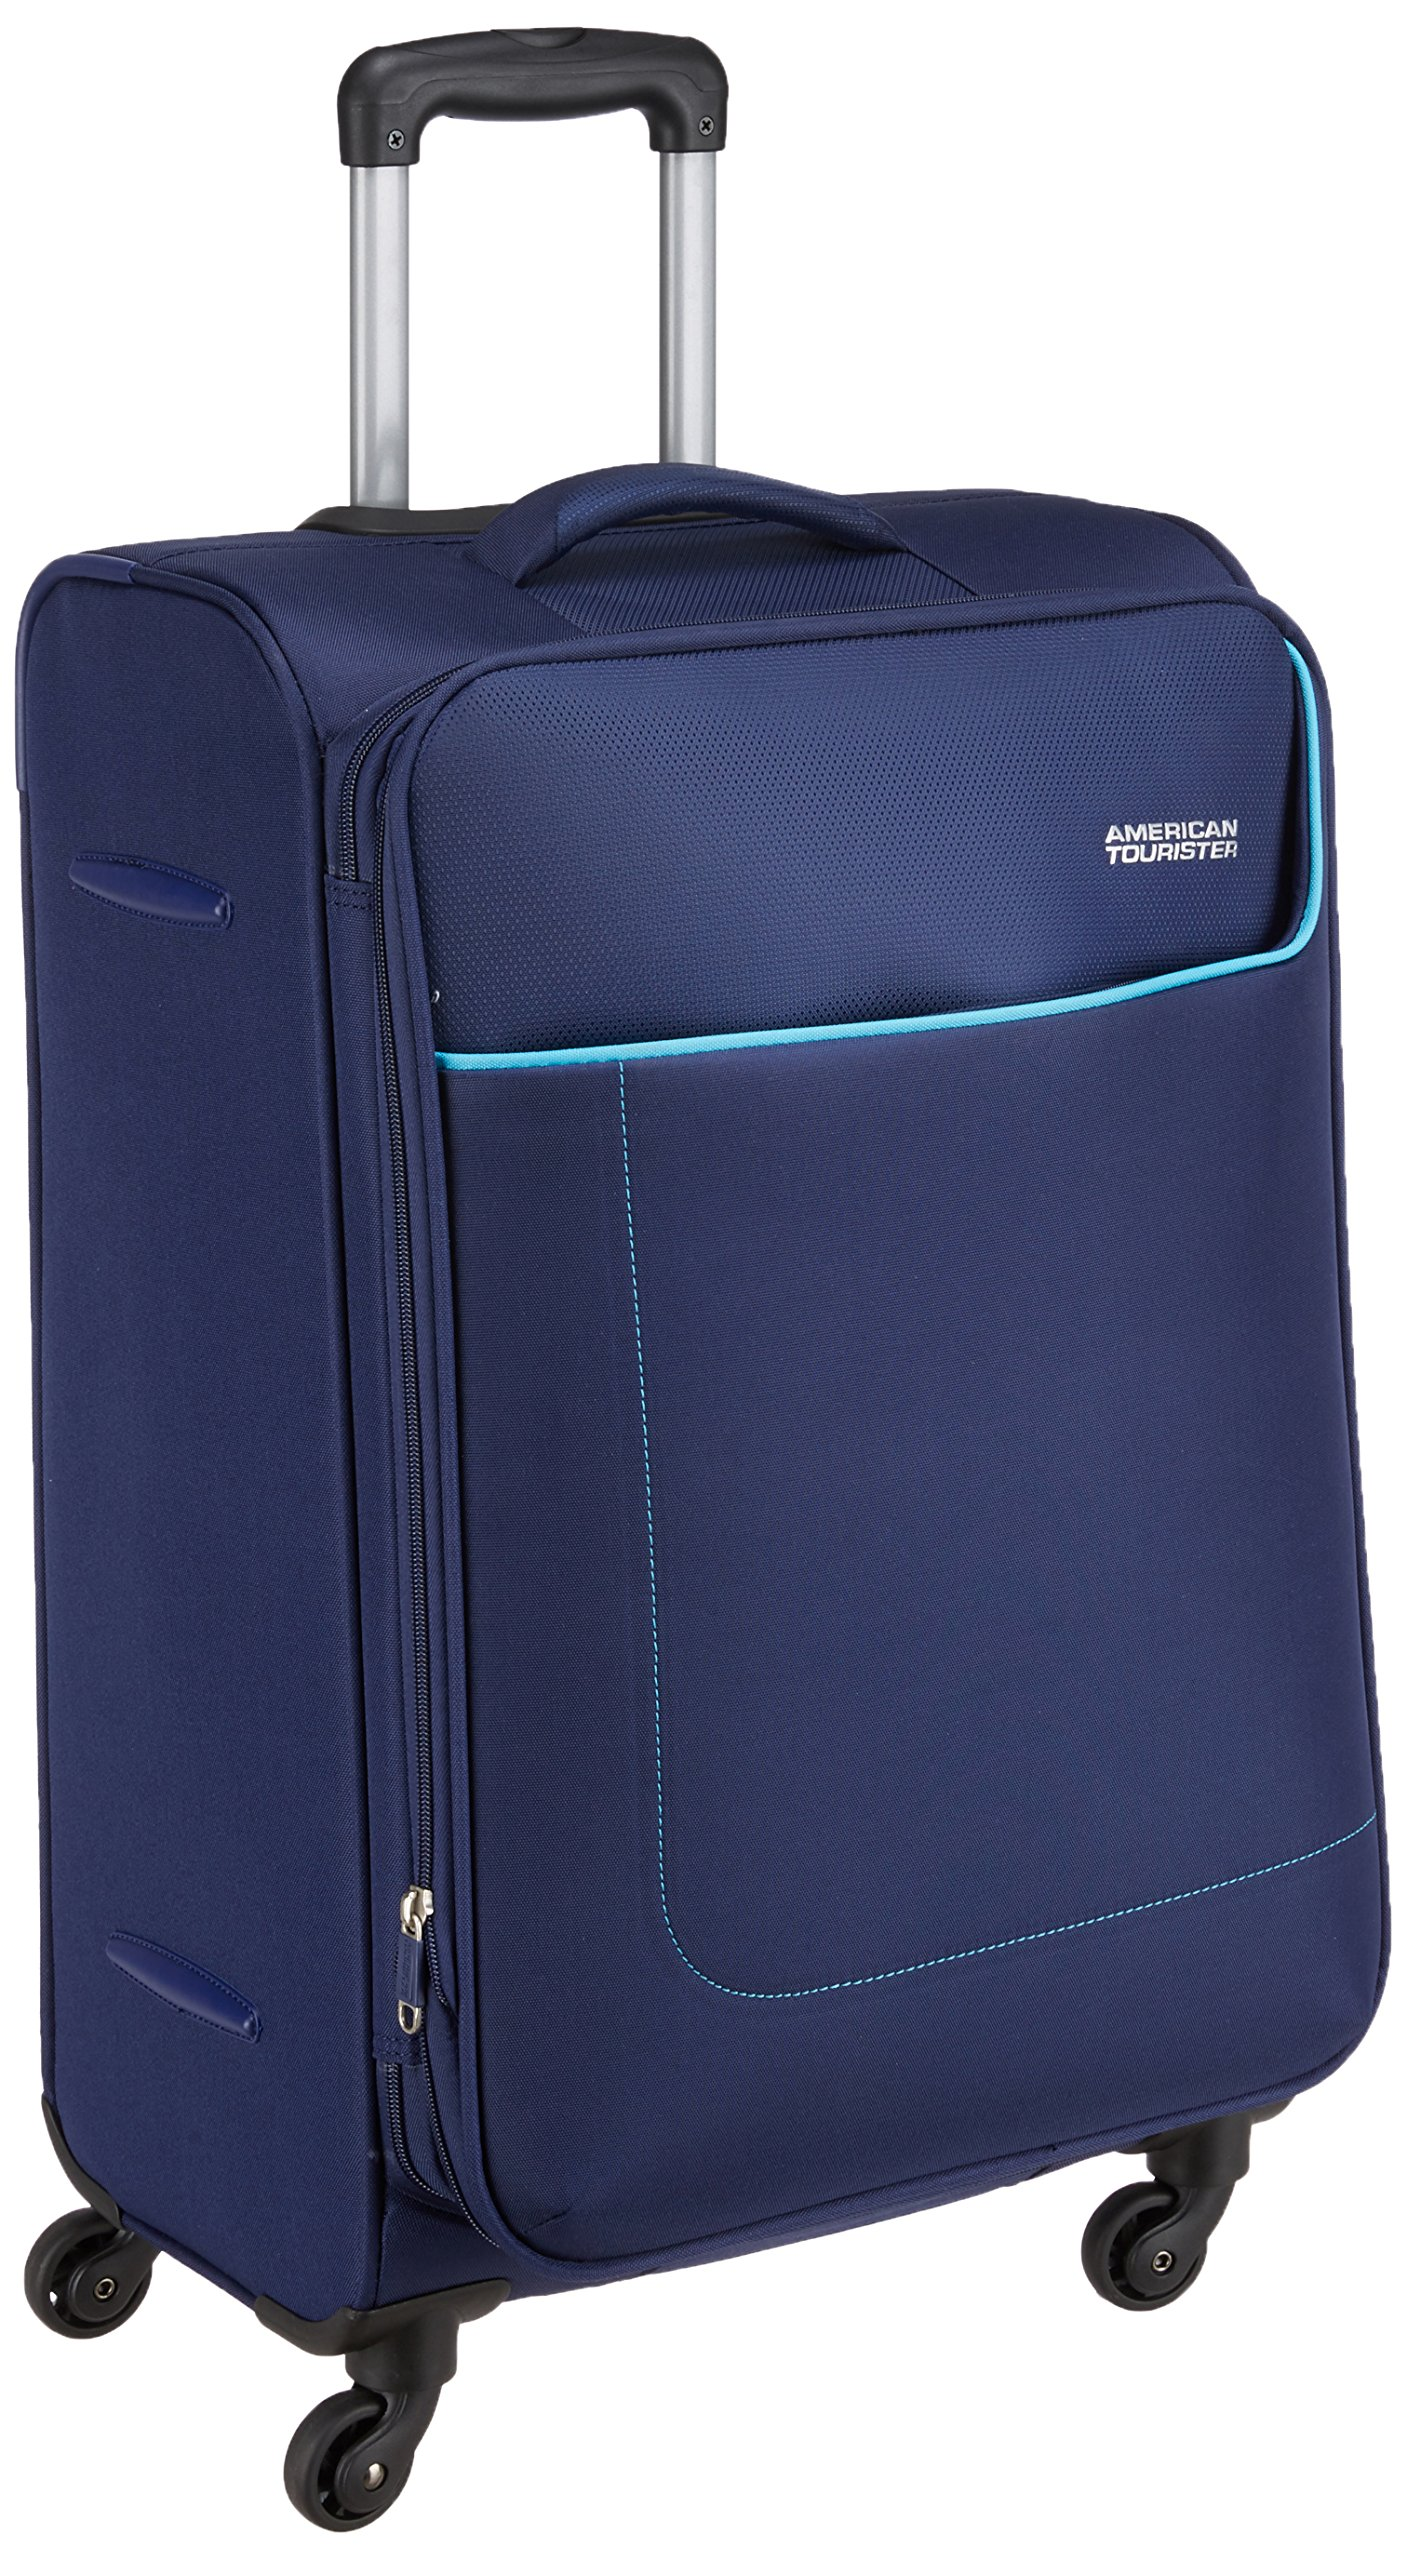 Good price for American Tourister 80cm Luggage Buy Online